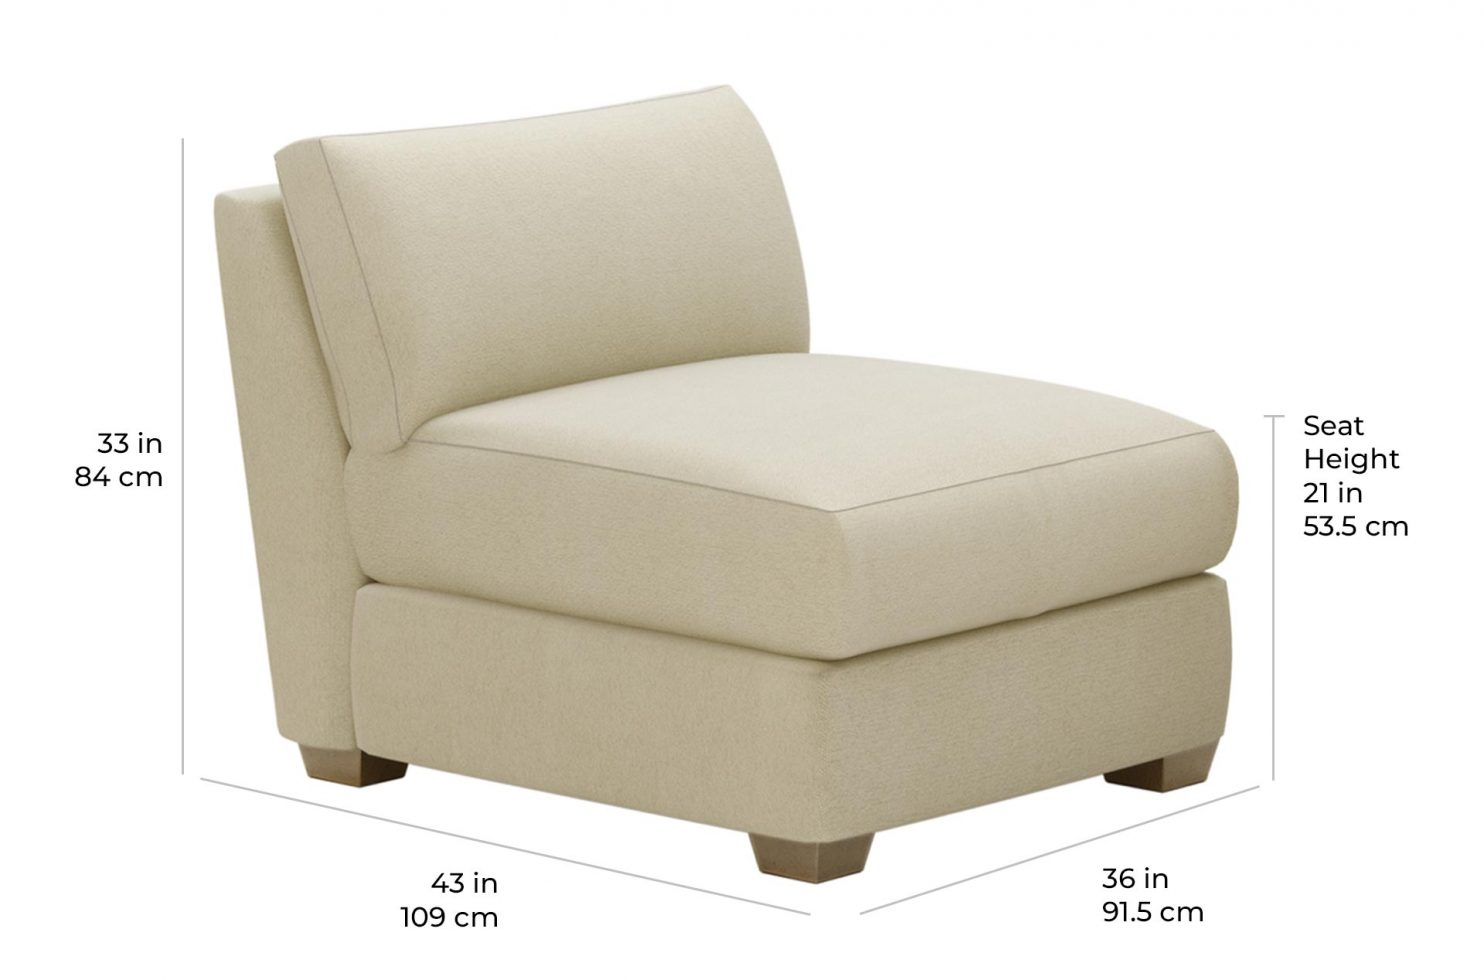 fizz imperial armless chair 105FT004P2 SSA scale dims